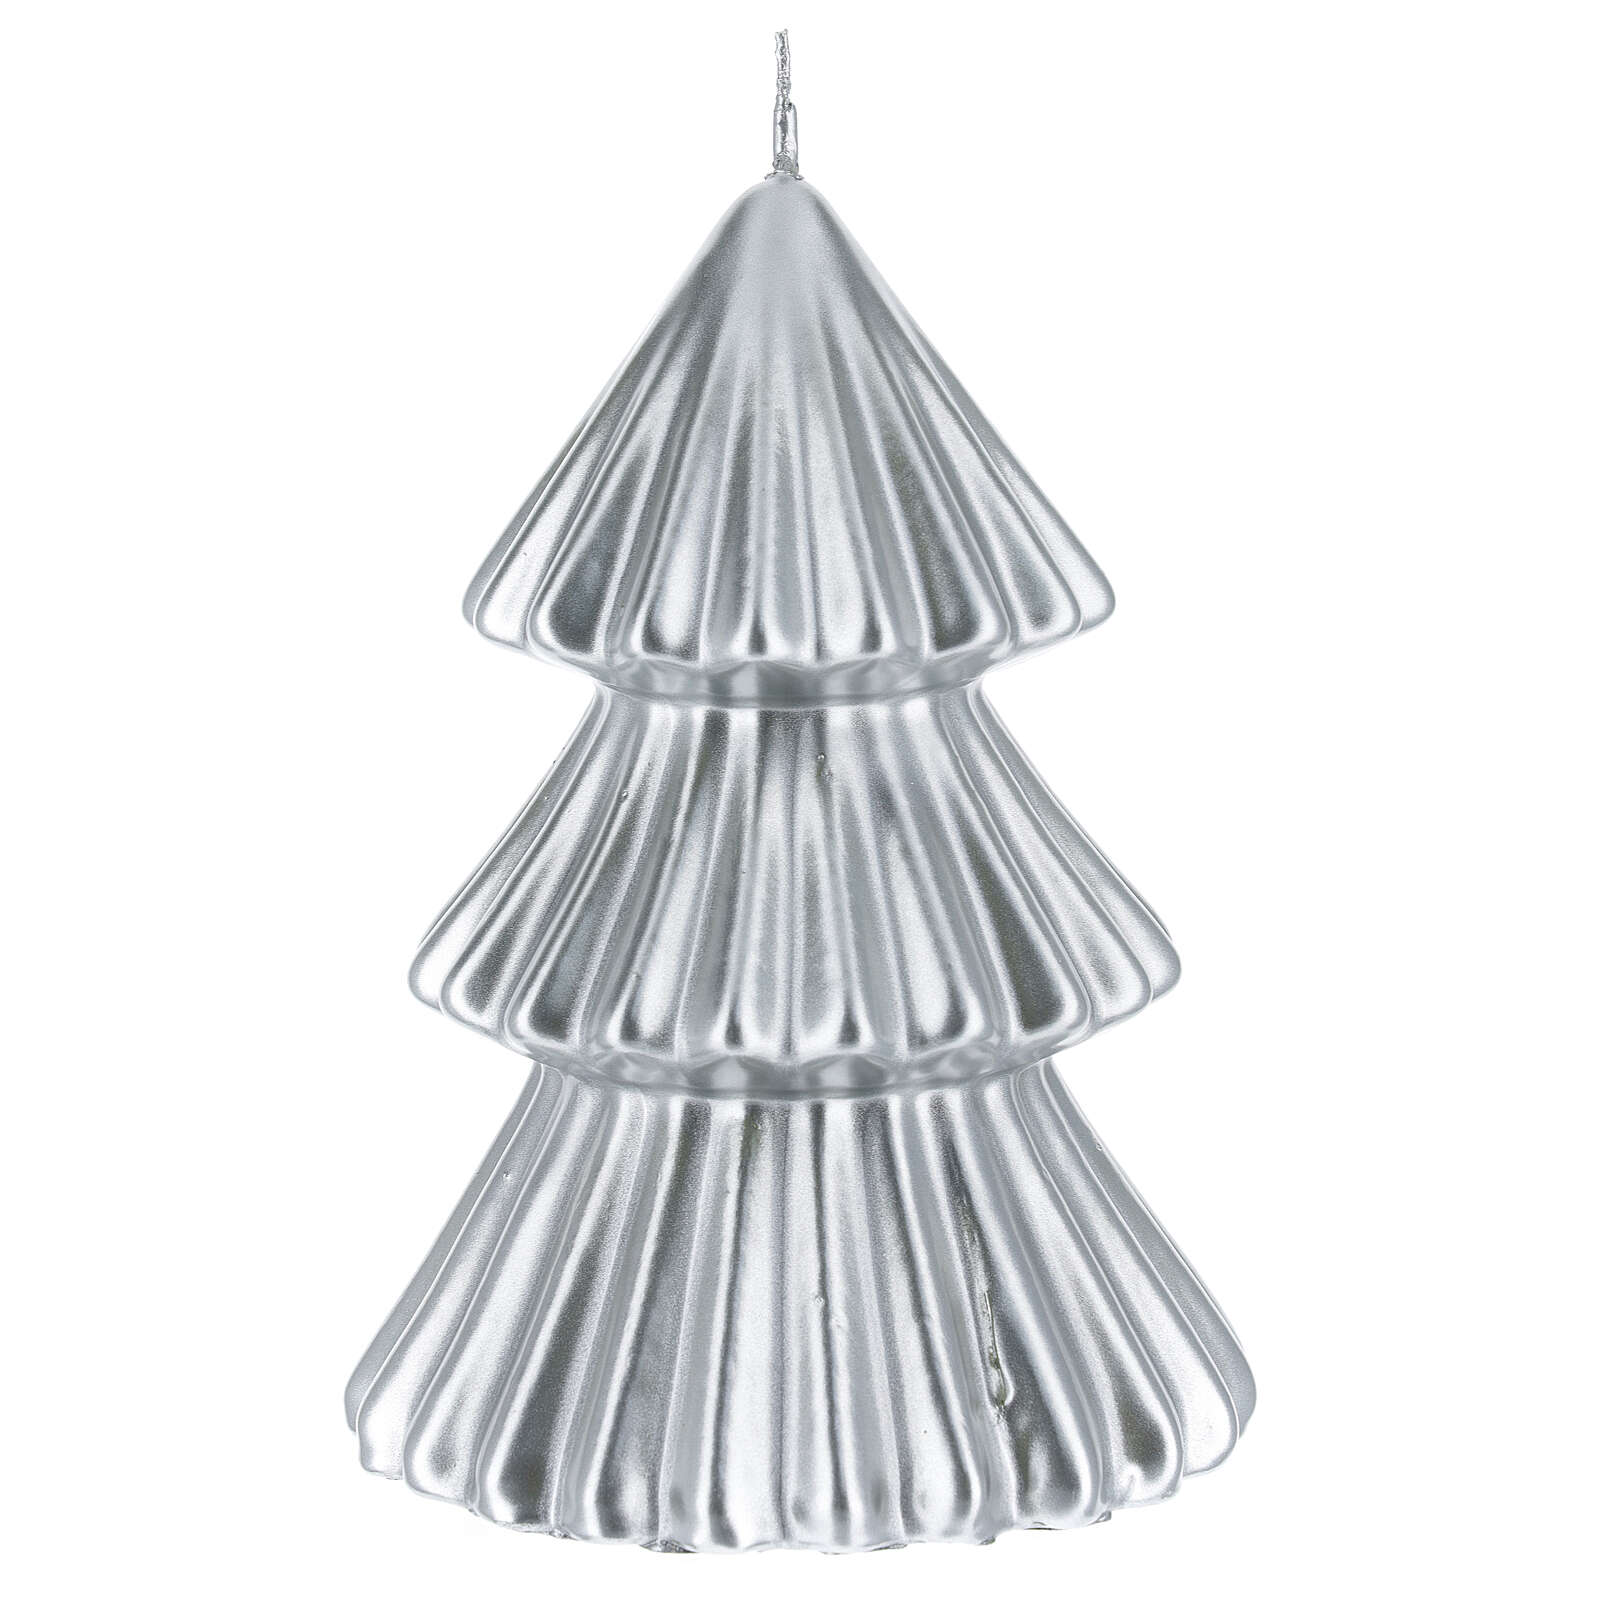 Silver Tokyo Christmas tree candle 7 in 3